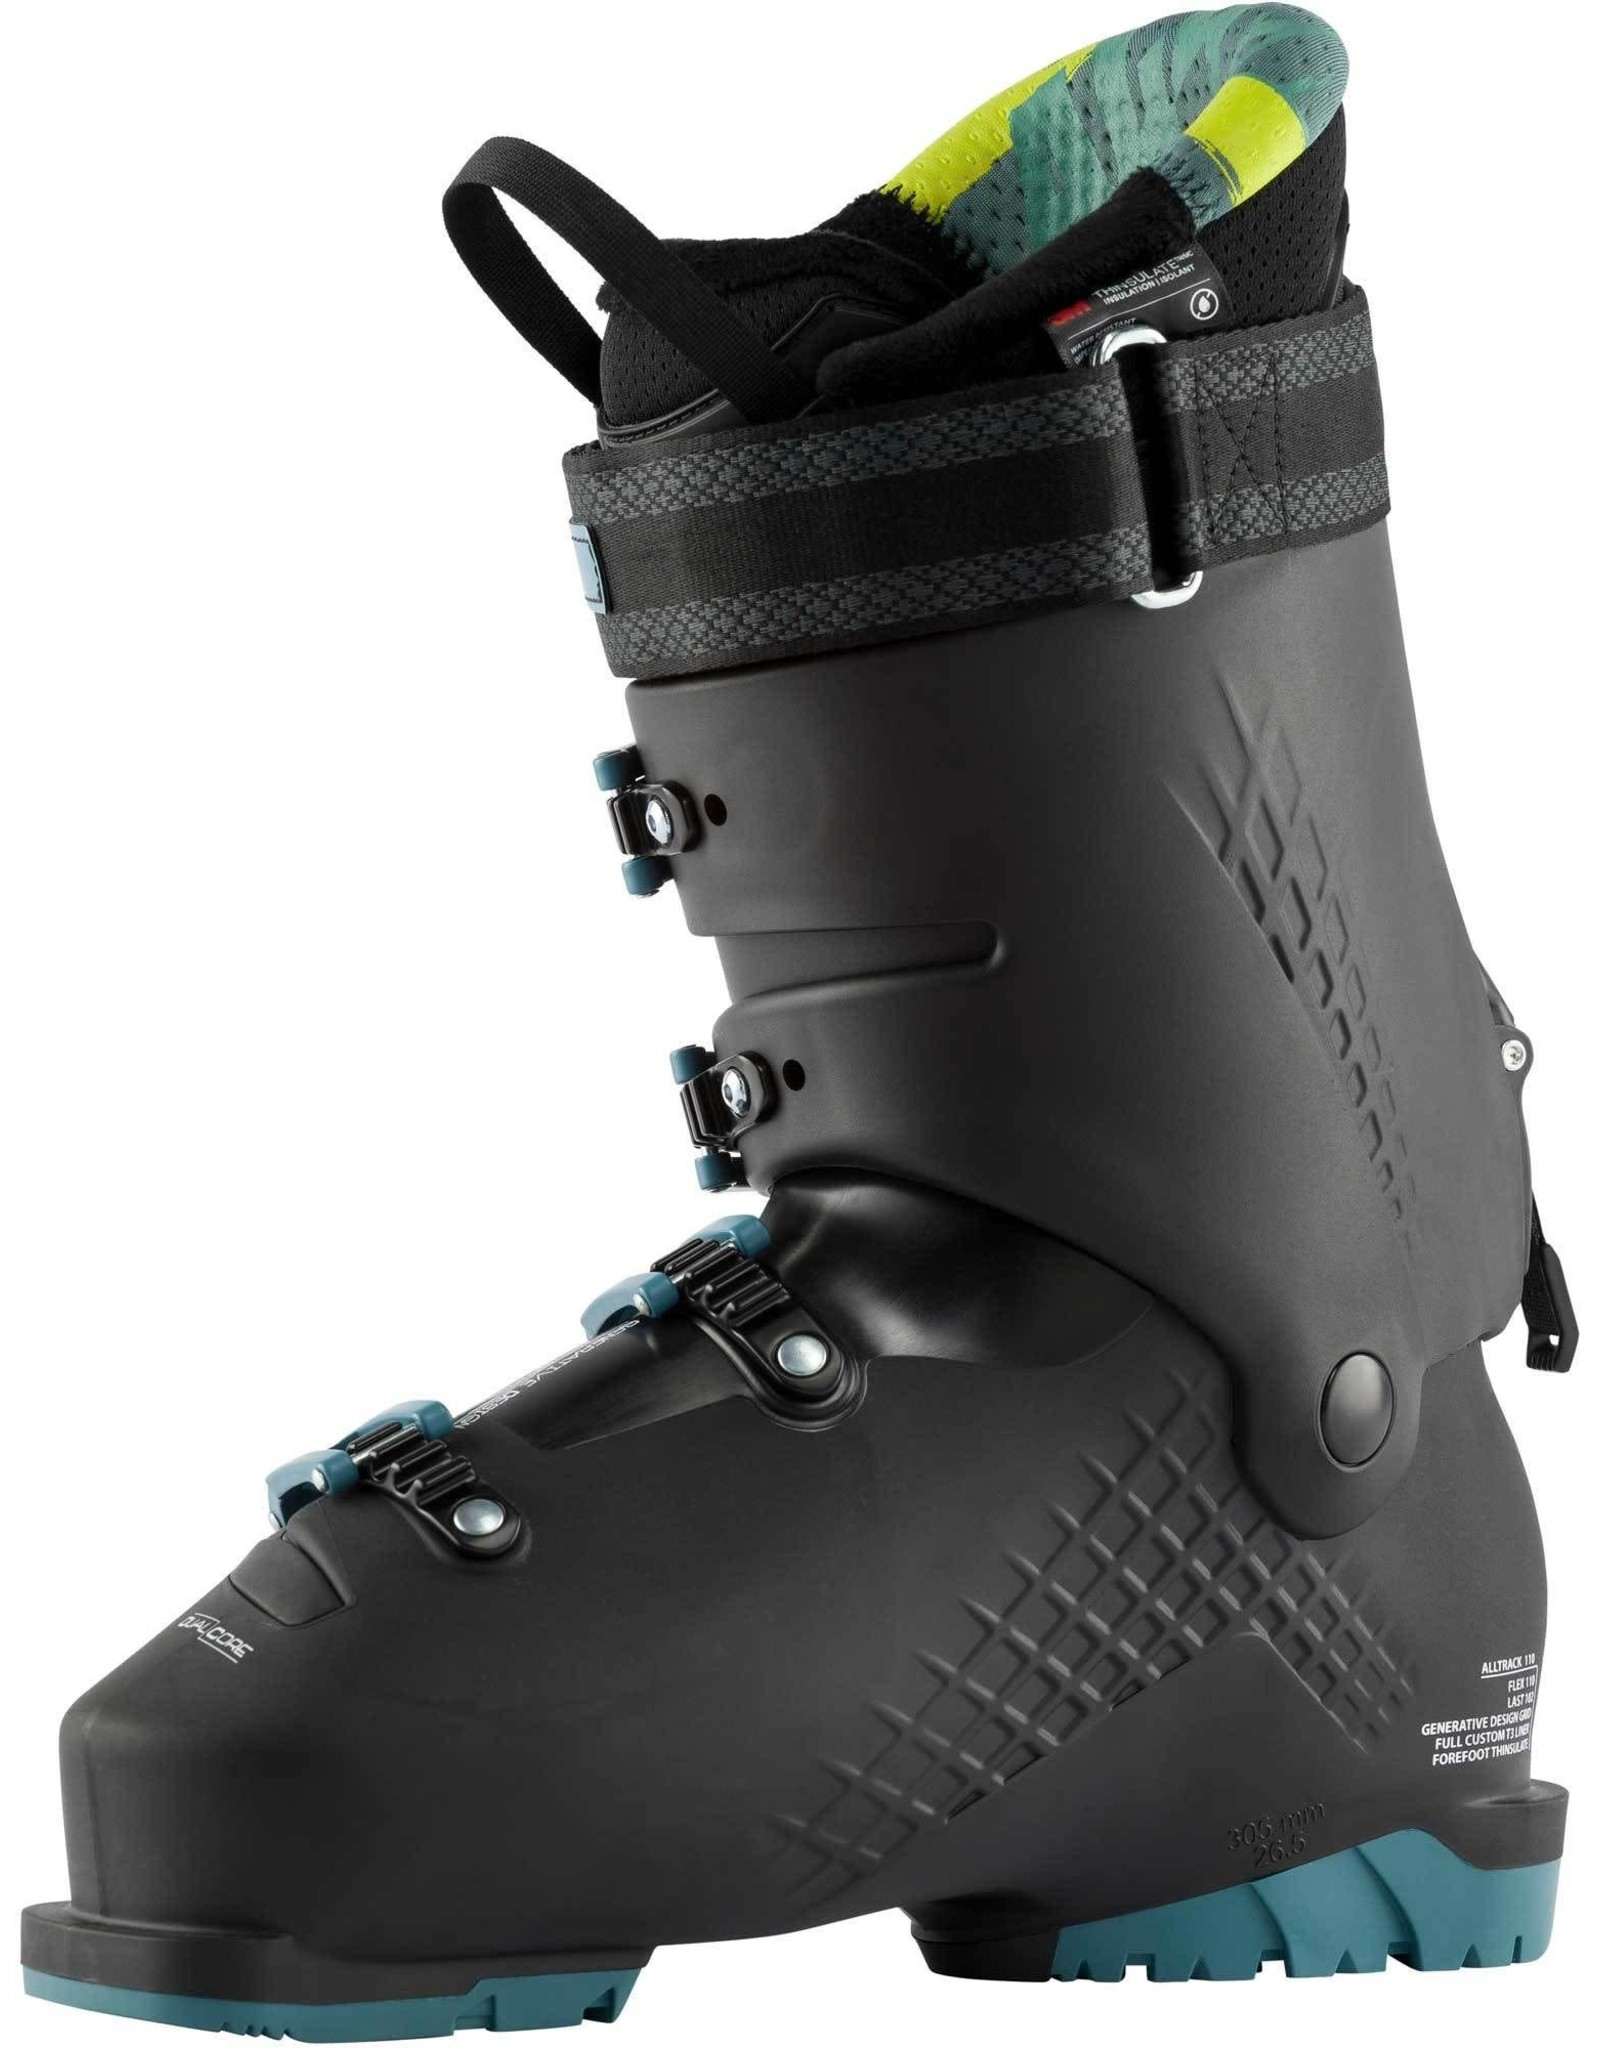 ROSSIGNOL ROSSIGNOL ALLTRACK 110 BLACK/STEEL BLUE ALPINE SKI  BOOT MEN 20